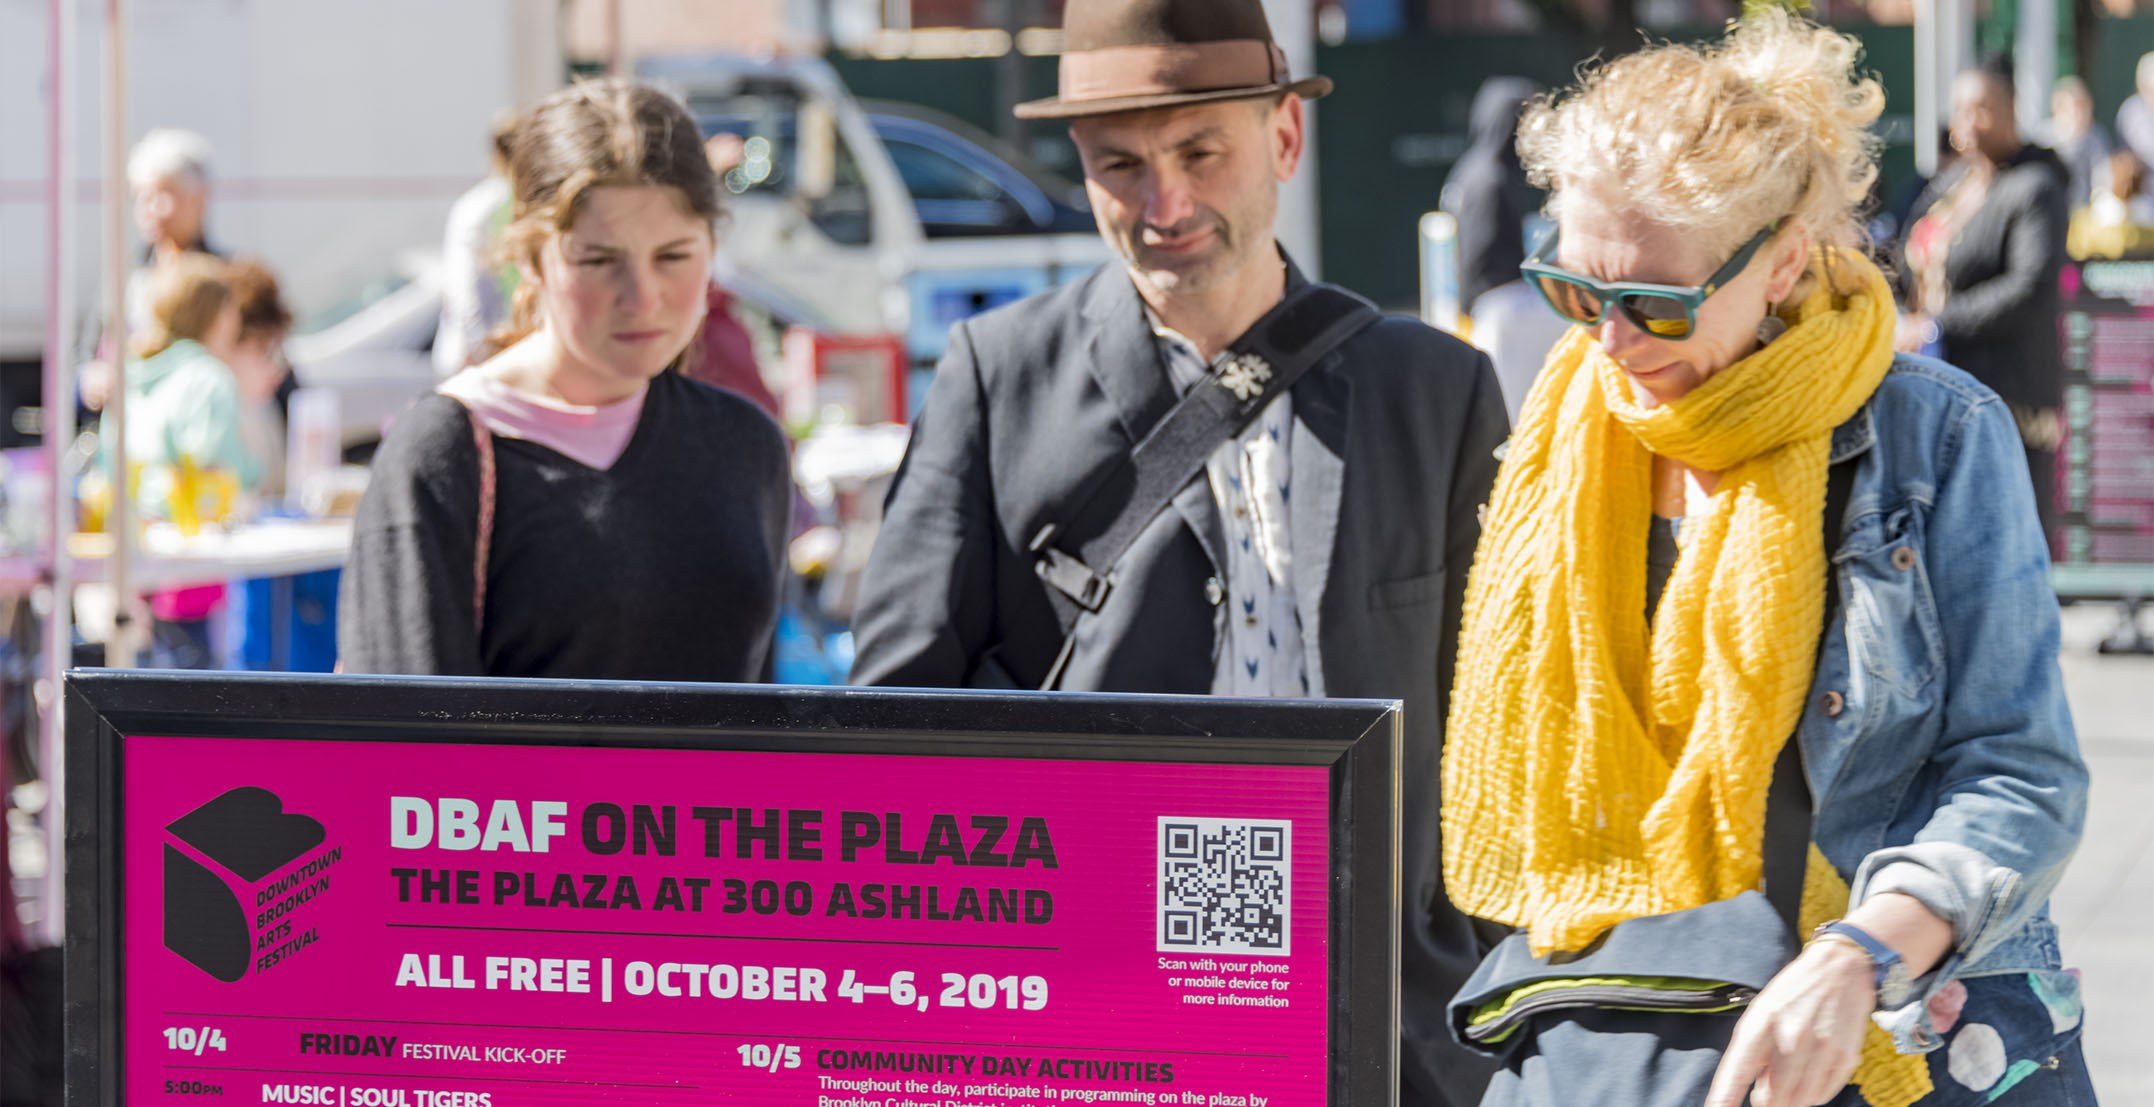 2019 Downtown Brooklyn Arts Festival brings together renowned Brooklyn institutions for a three-day celebration